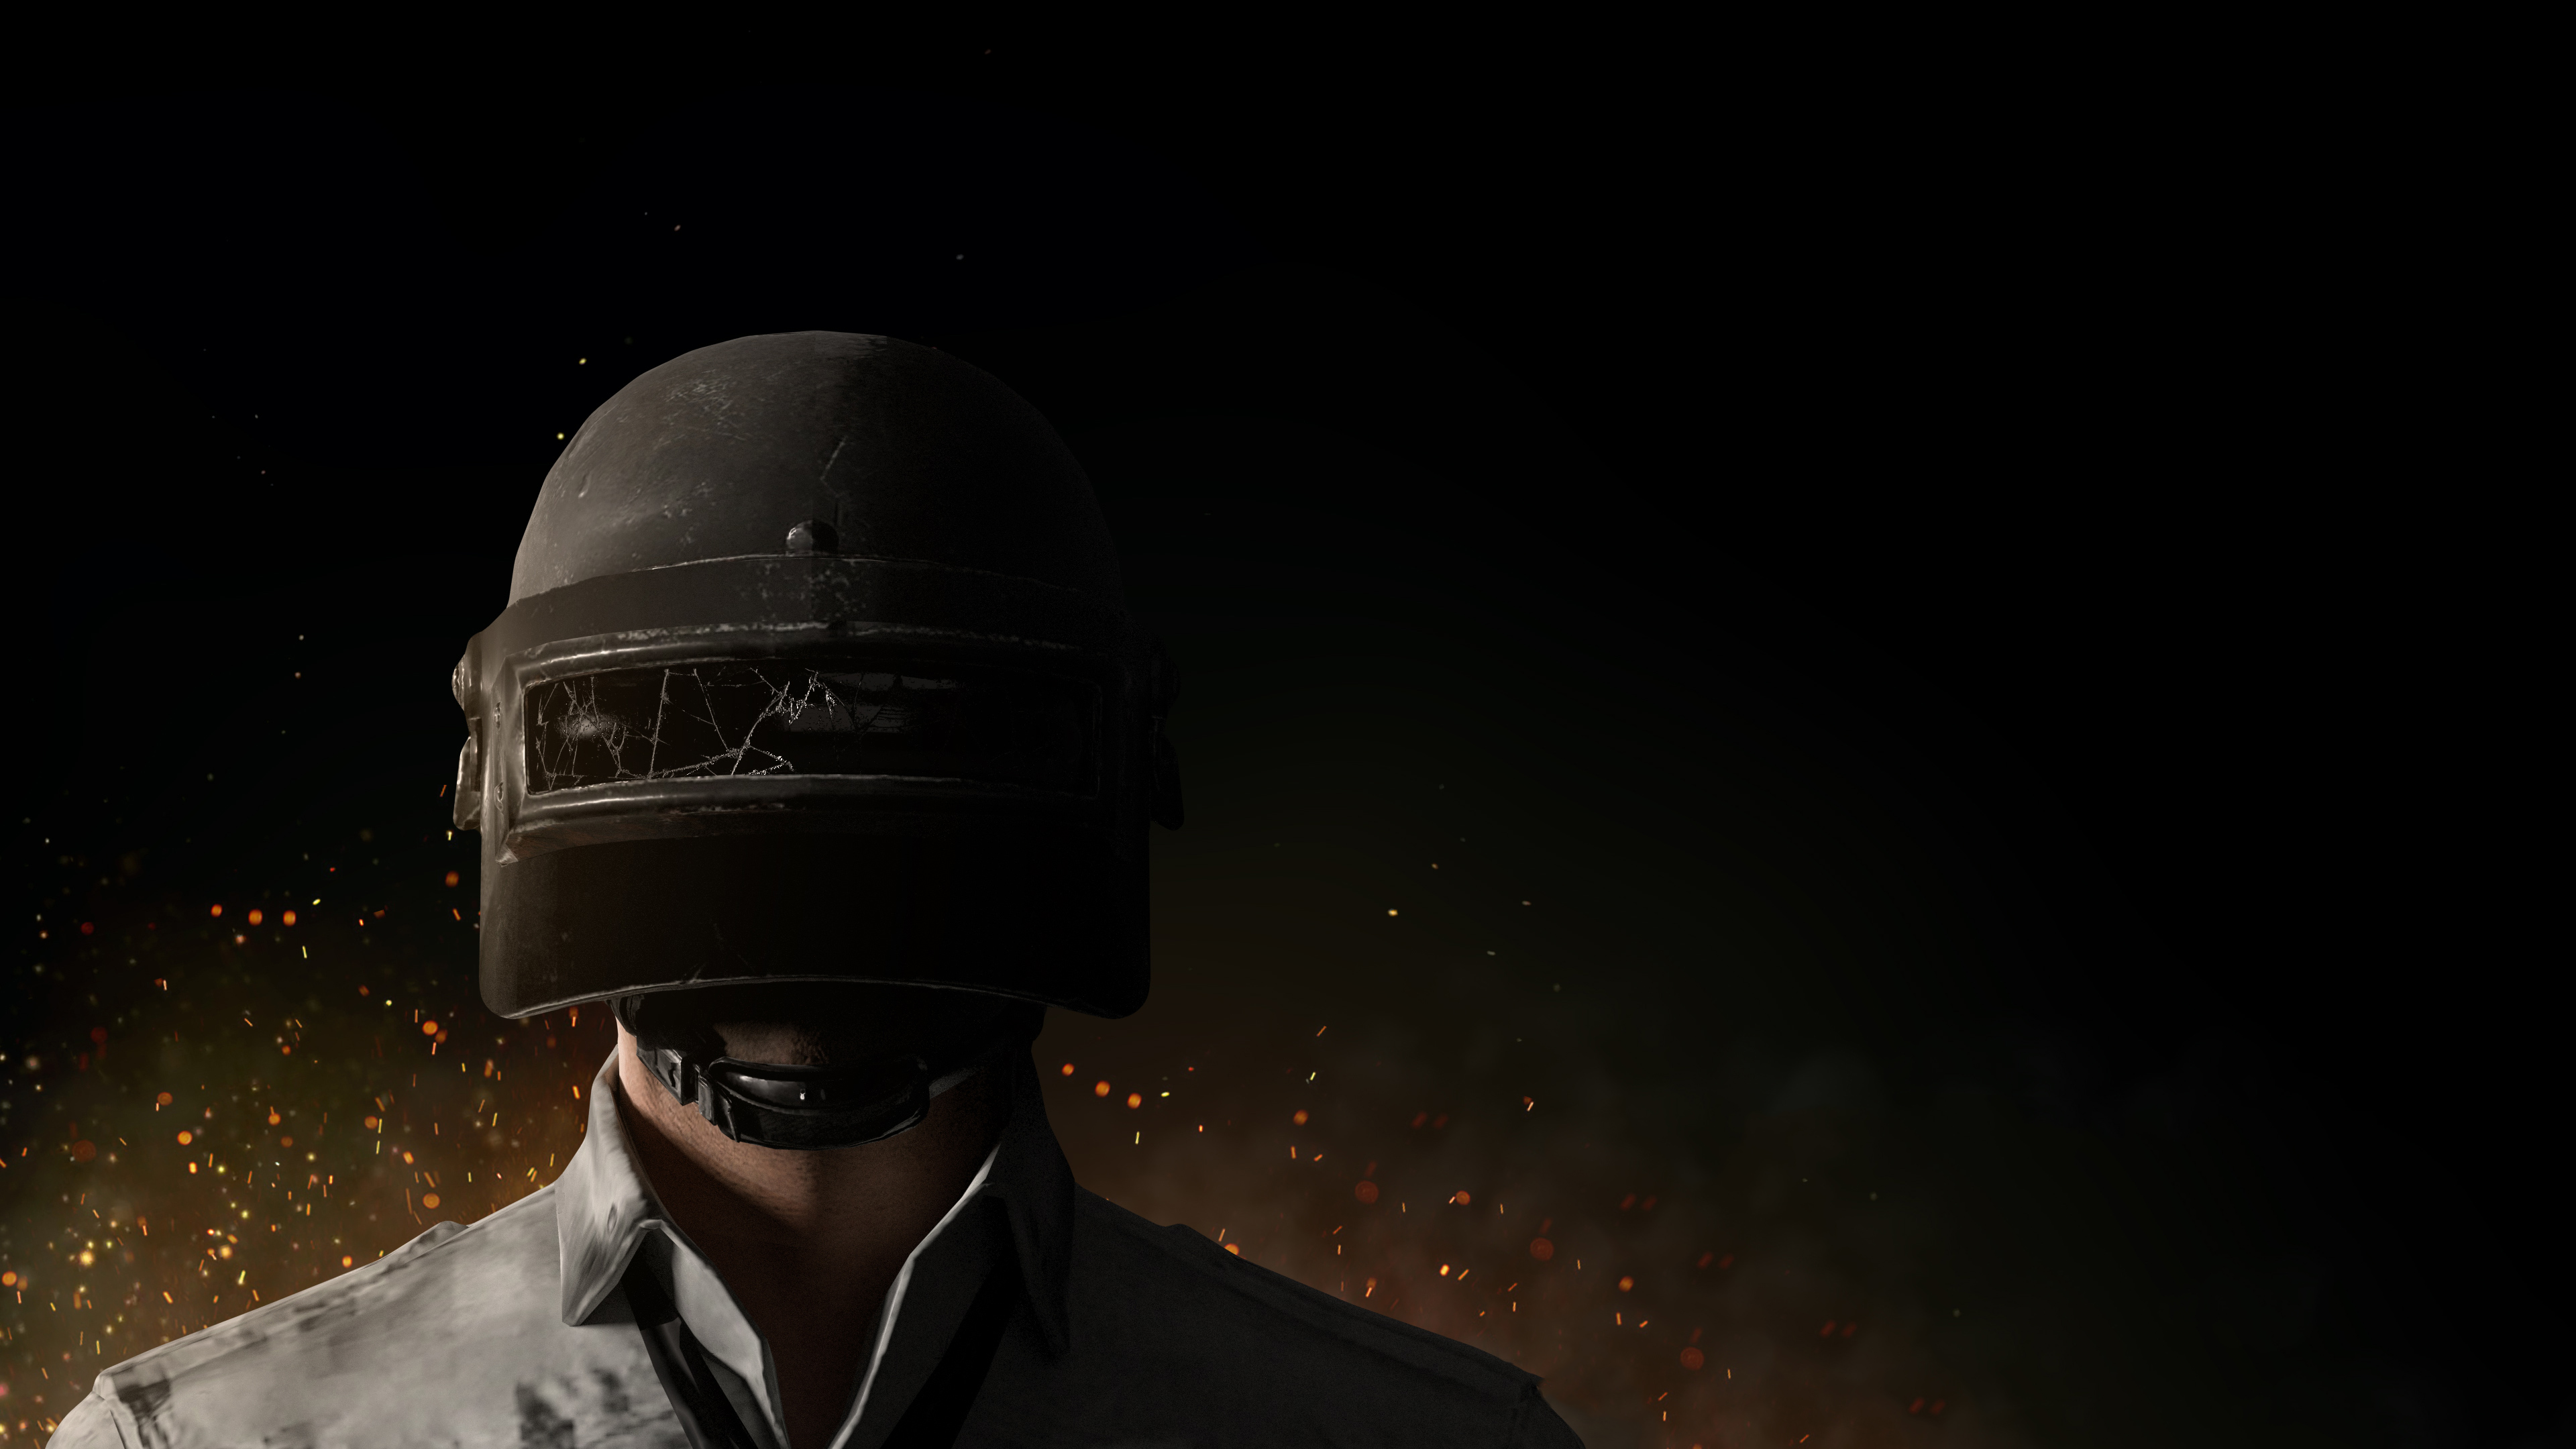 Pubg Wallpaper Hd Pc: PUBG Helmet Guy 4k, HD Games, 4k Wallpapers, Images